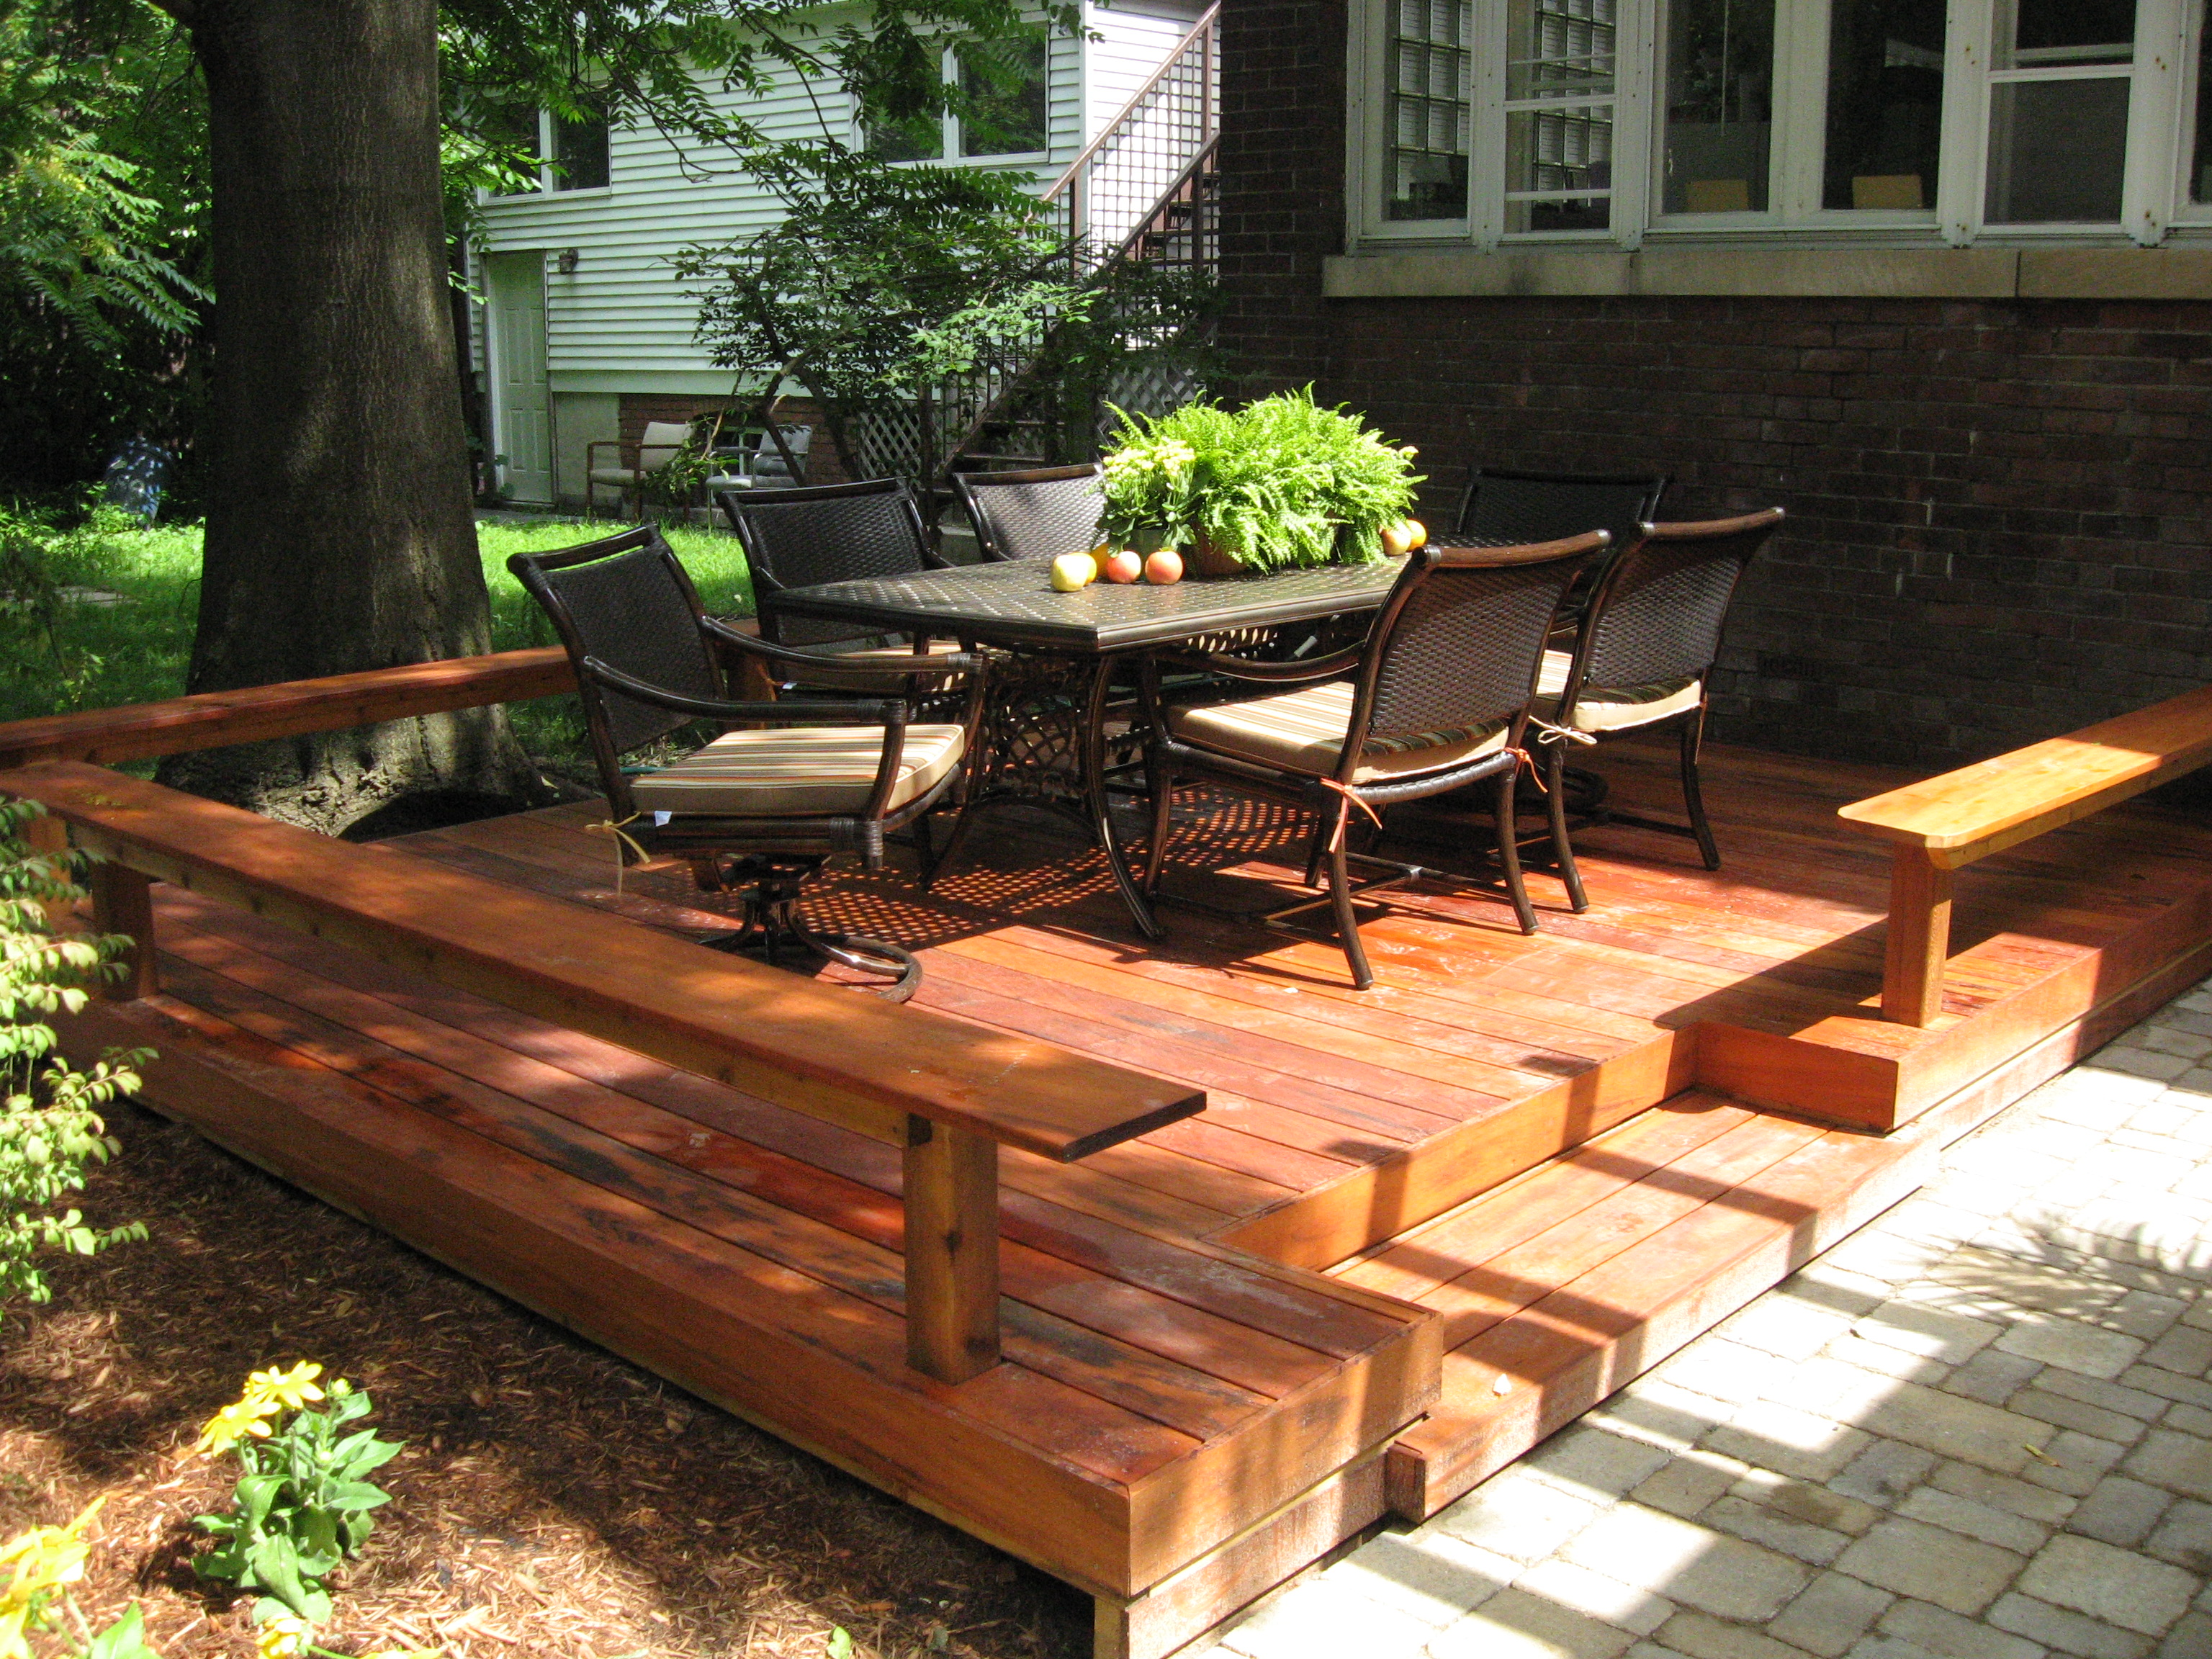 Deck Vs Patio What Is Best For You?  Huffpost. Concrete Patio Landscaping Ideas. Patio Installation Tools. Patio Garden Restaurant At The Winnipesaukee Marketplace. Yellow Patio Decor. Patio Landscaping Flowers. Patio Table And Chairs Ikea. Patio Home Lincoln Ne. Patio Restaurant Greece